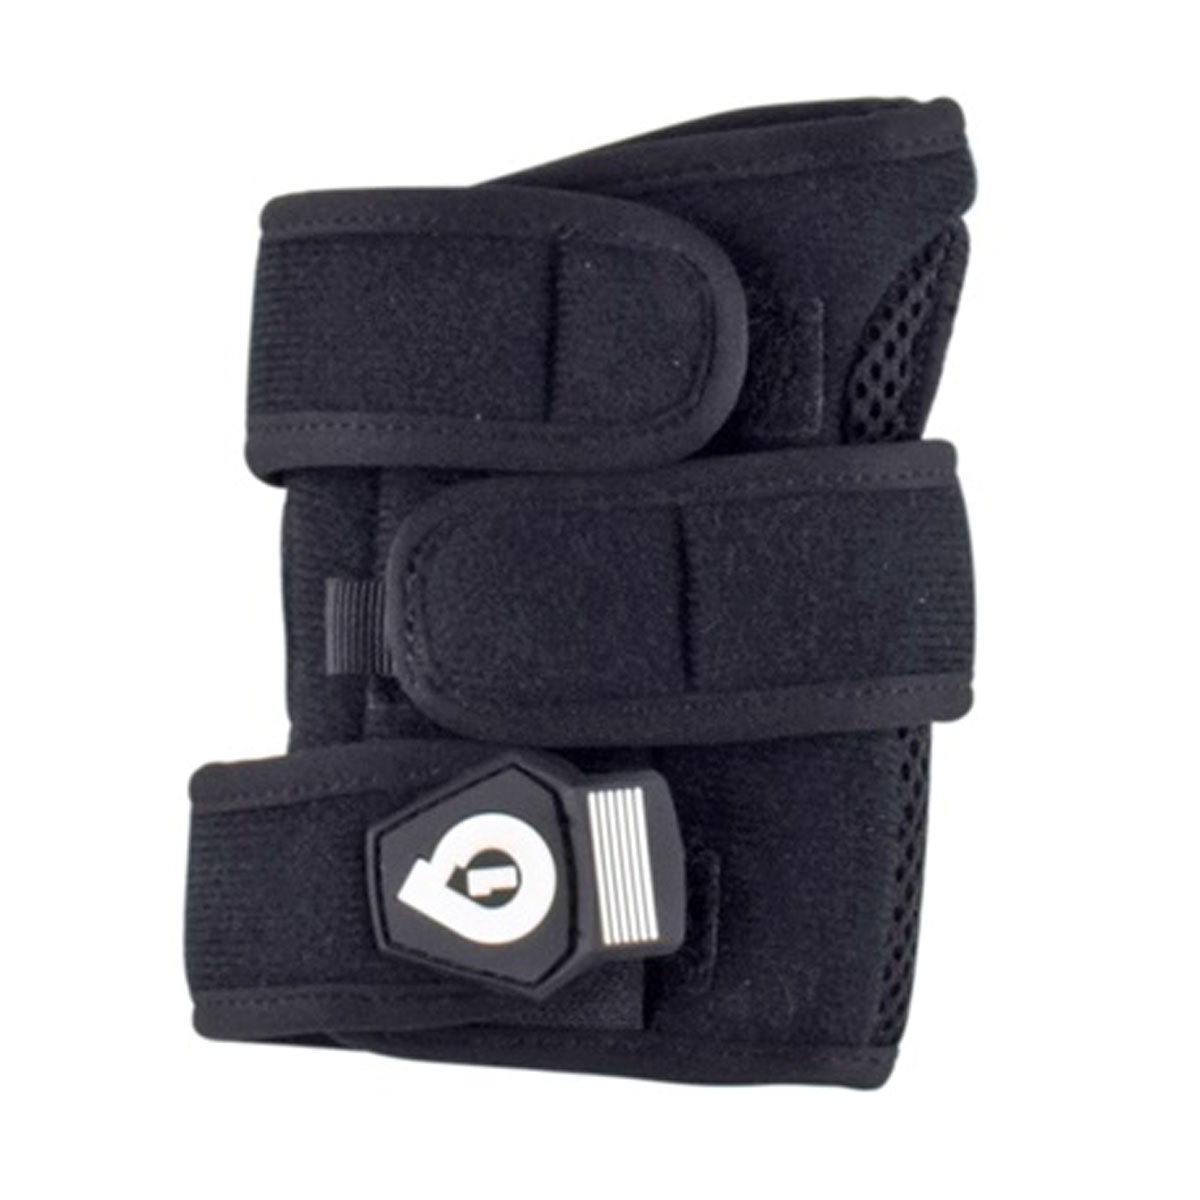 SixSixOne Bike/Moto Wristwrap Wrist Support - Right Hand - 7024